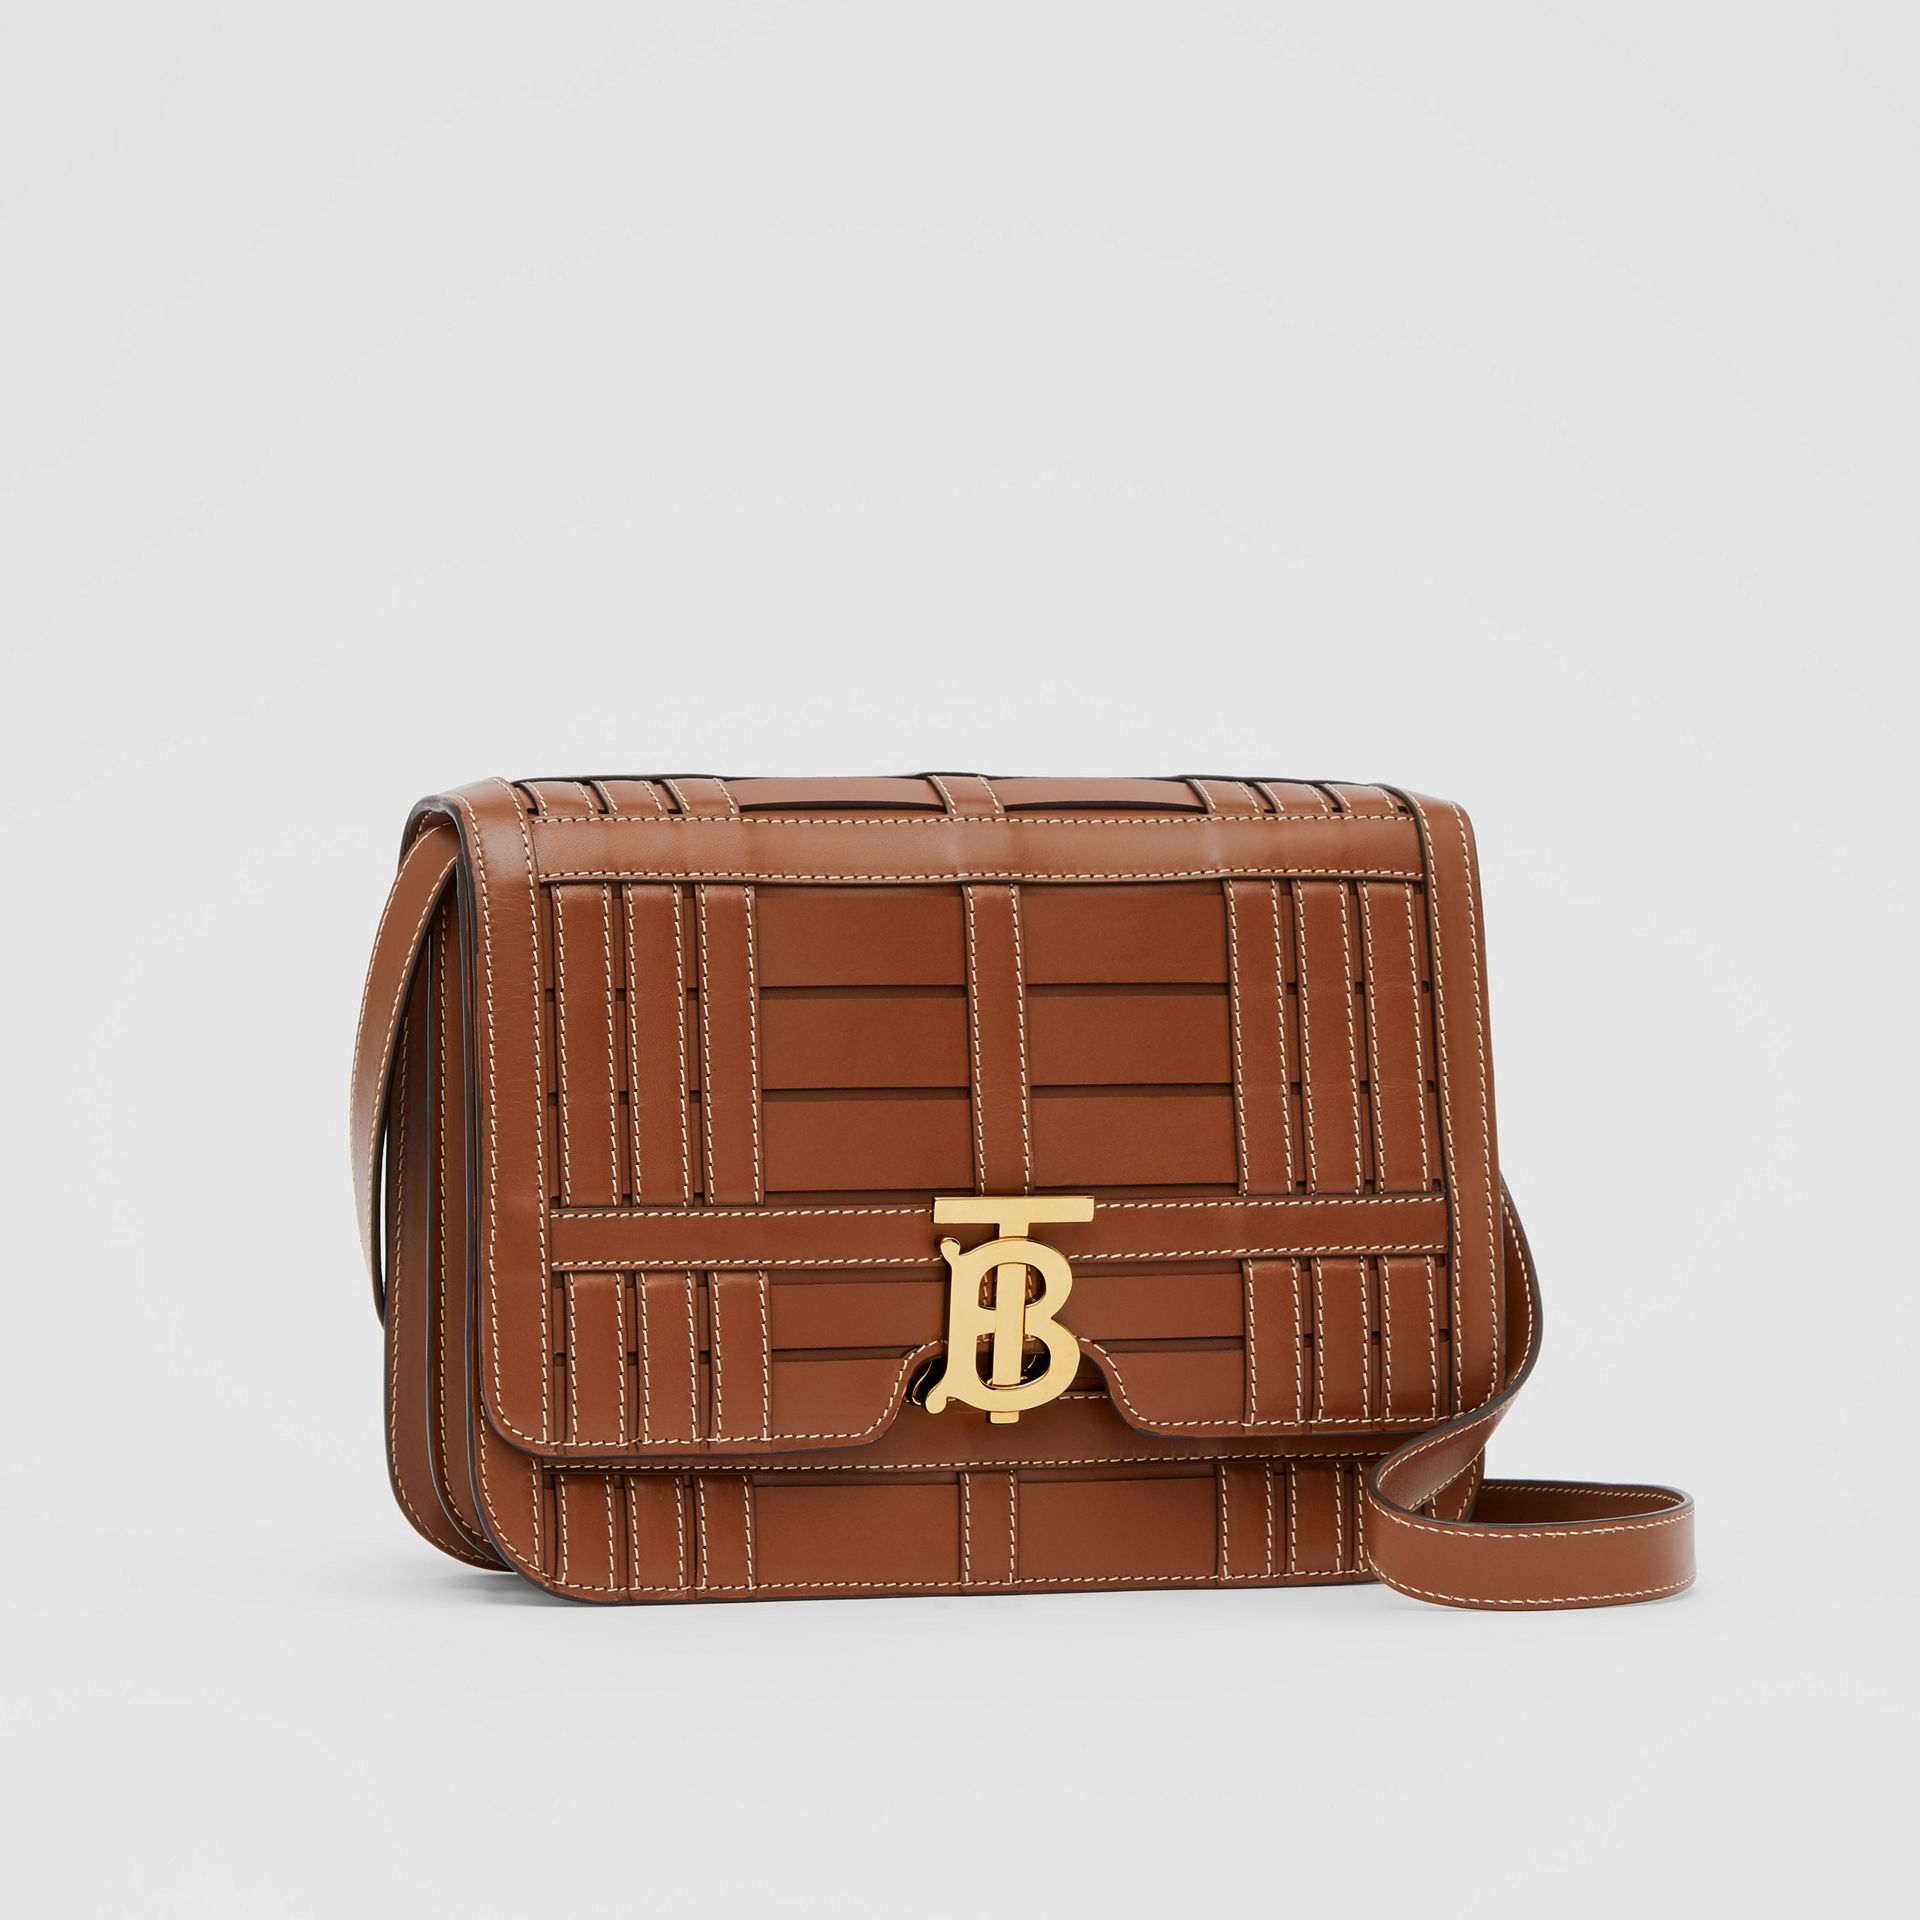 Medium Woven Leather TB Bag in Tan - Women | Burberry Canada - gallery image 6